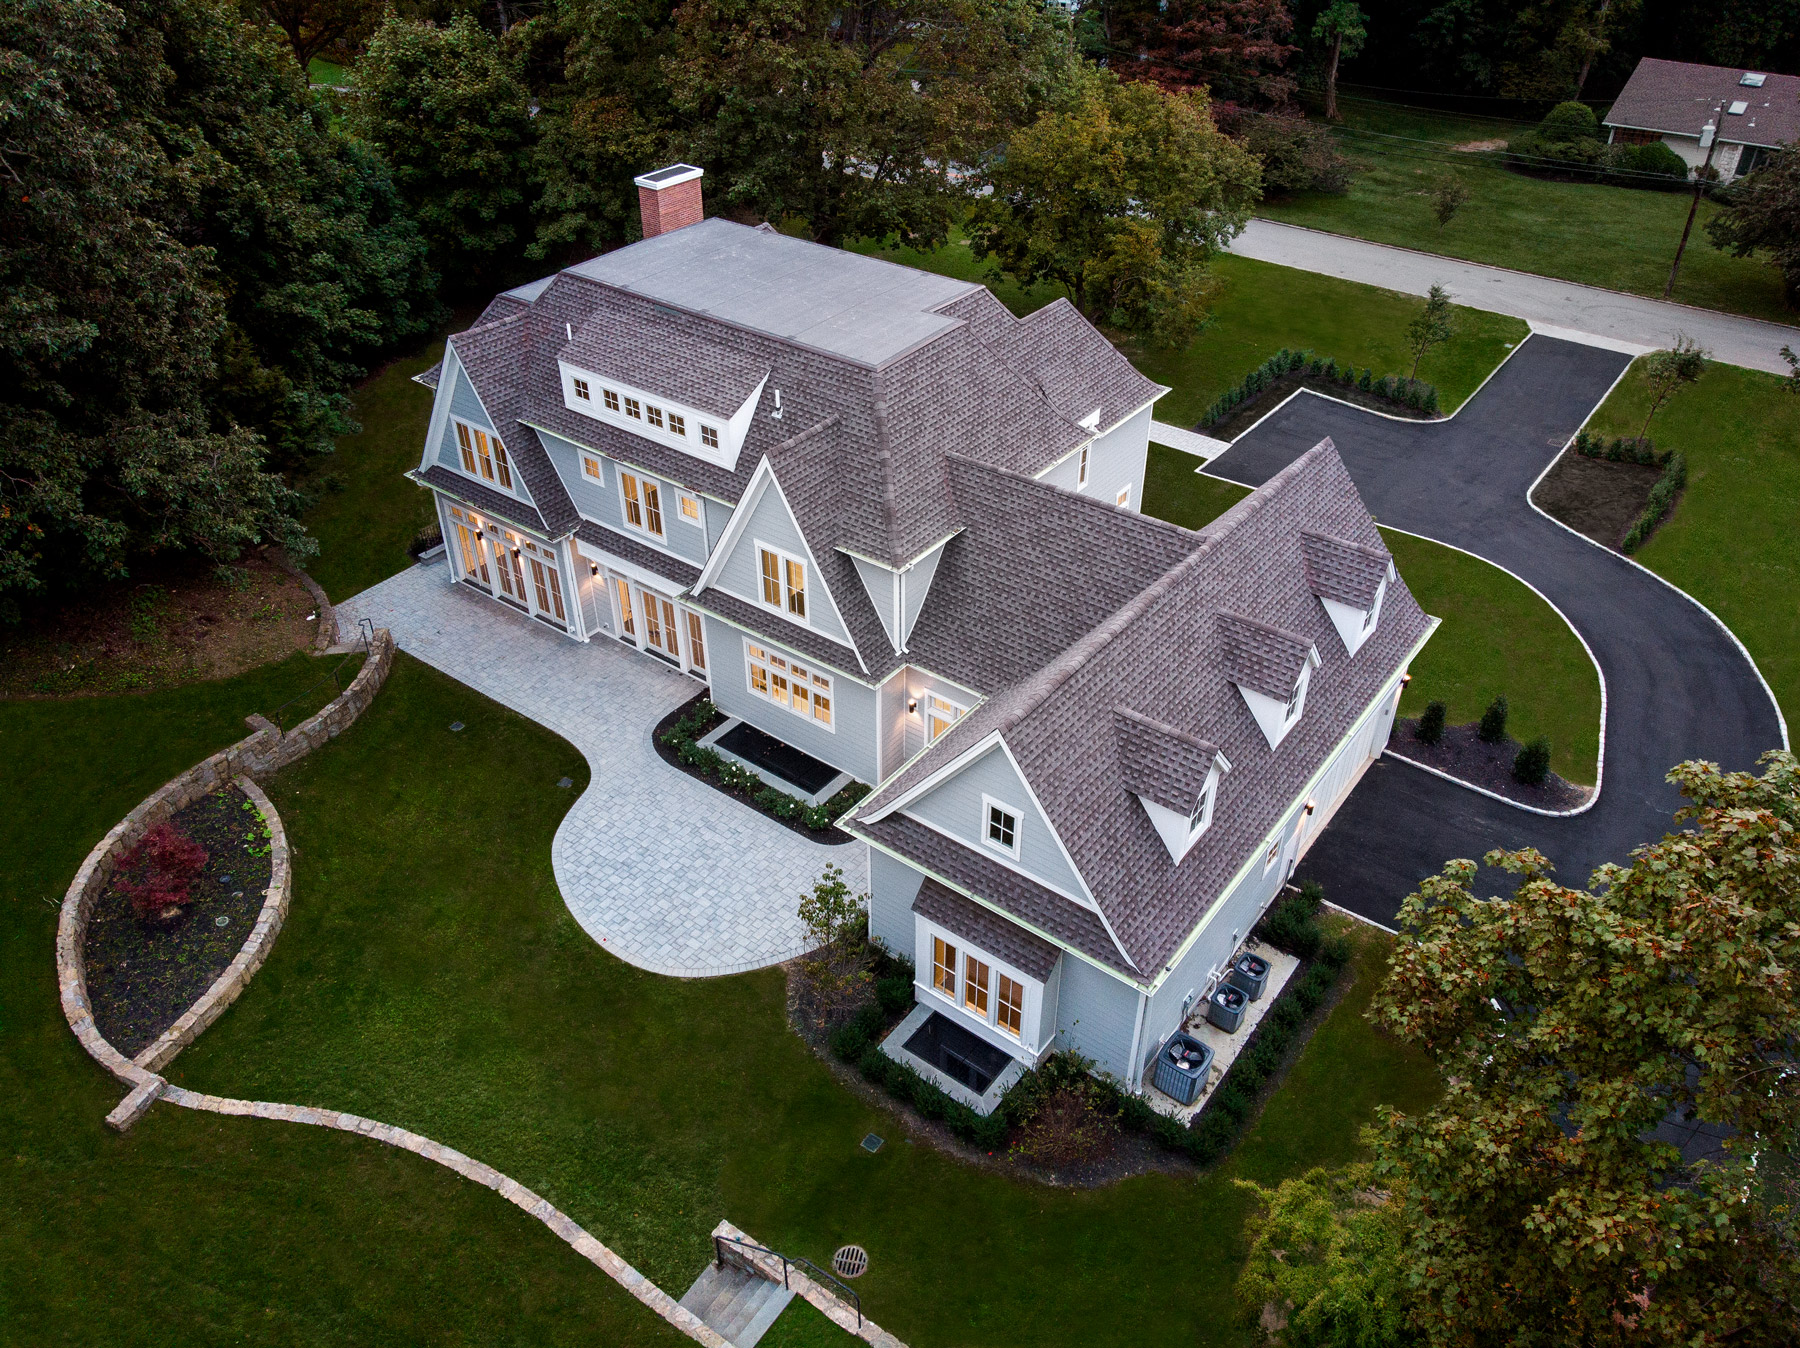 Custom Home design and architecture by DHMurray Architecture